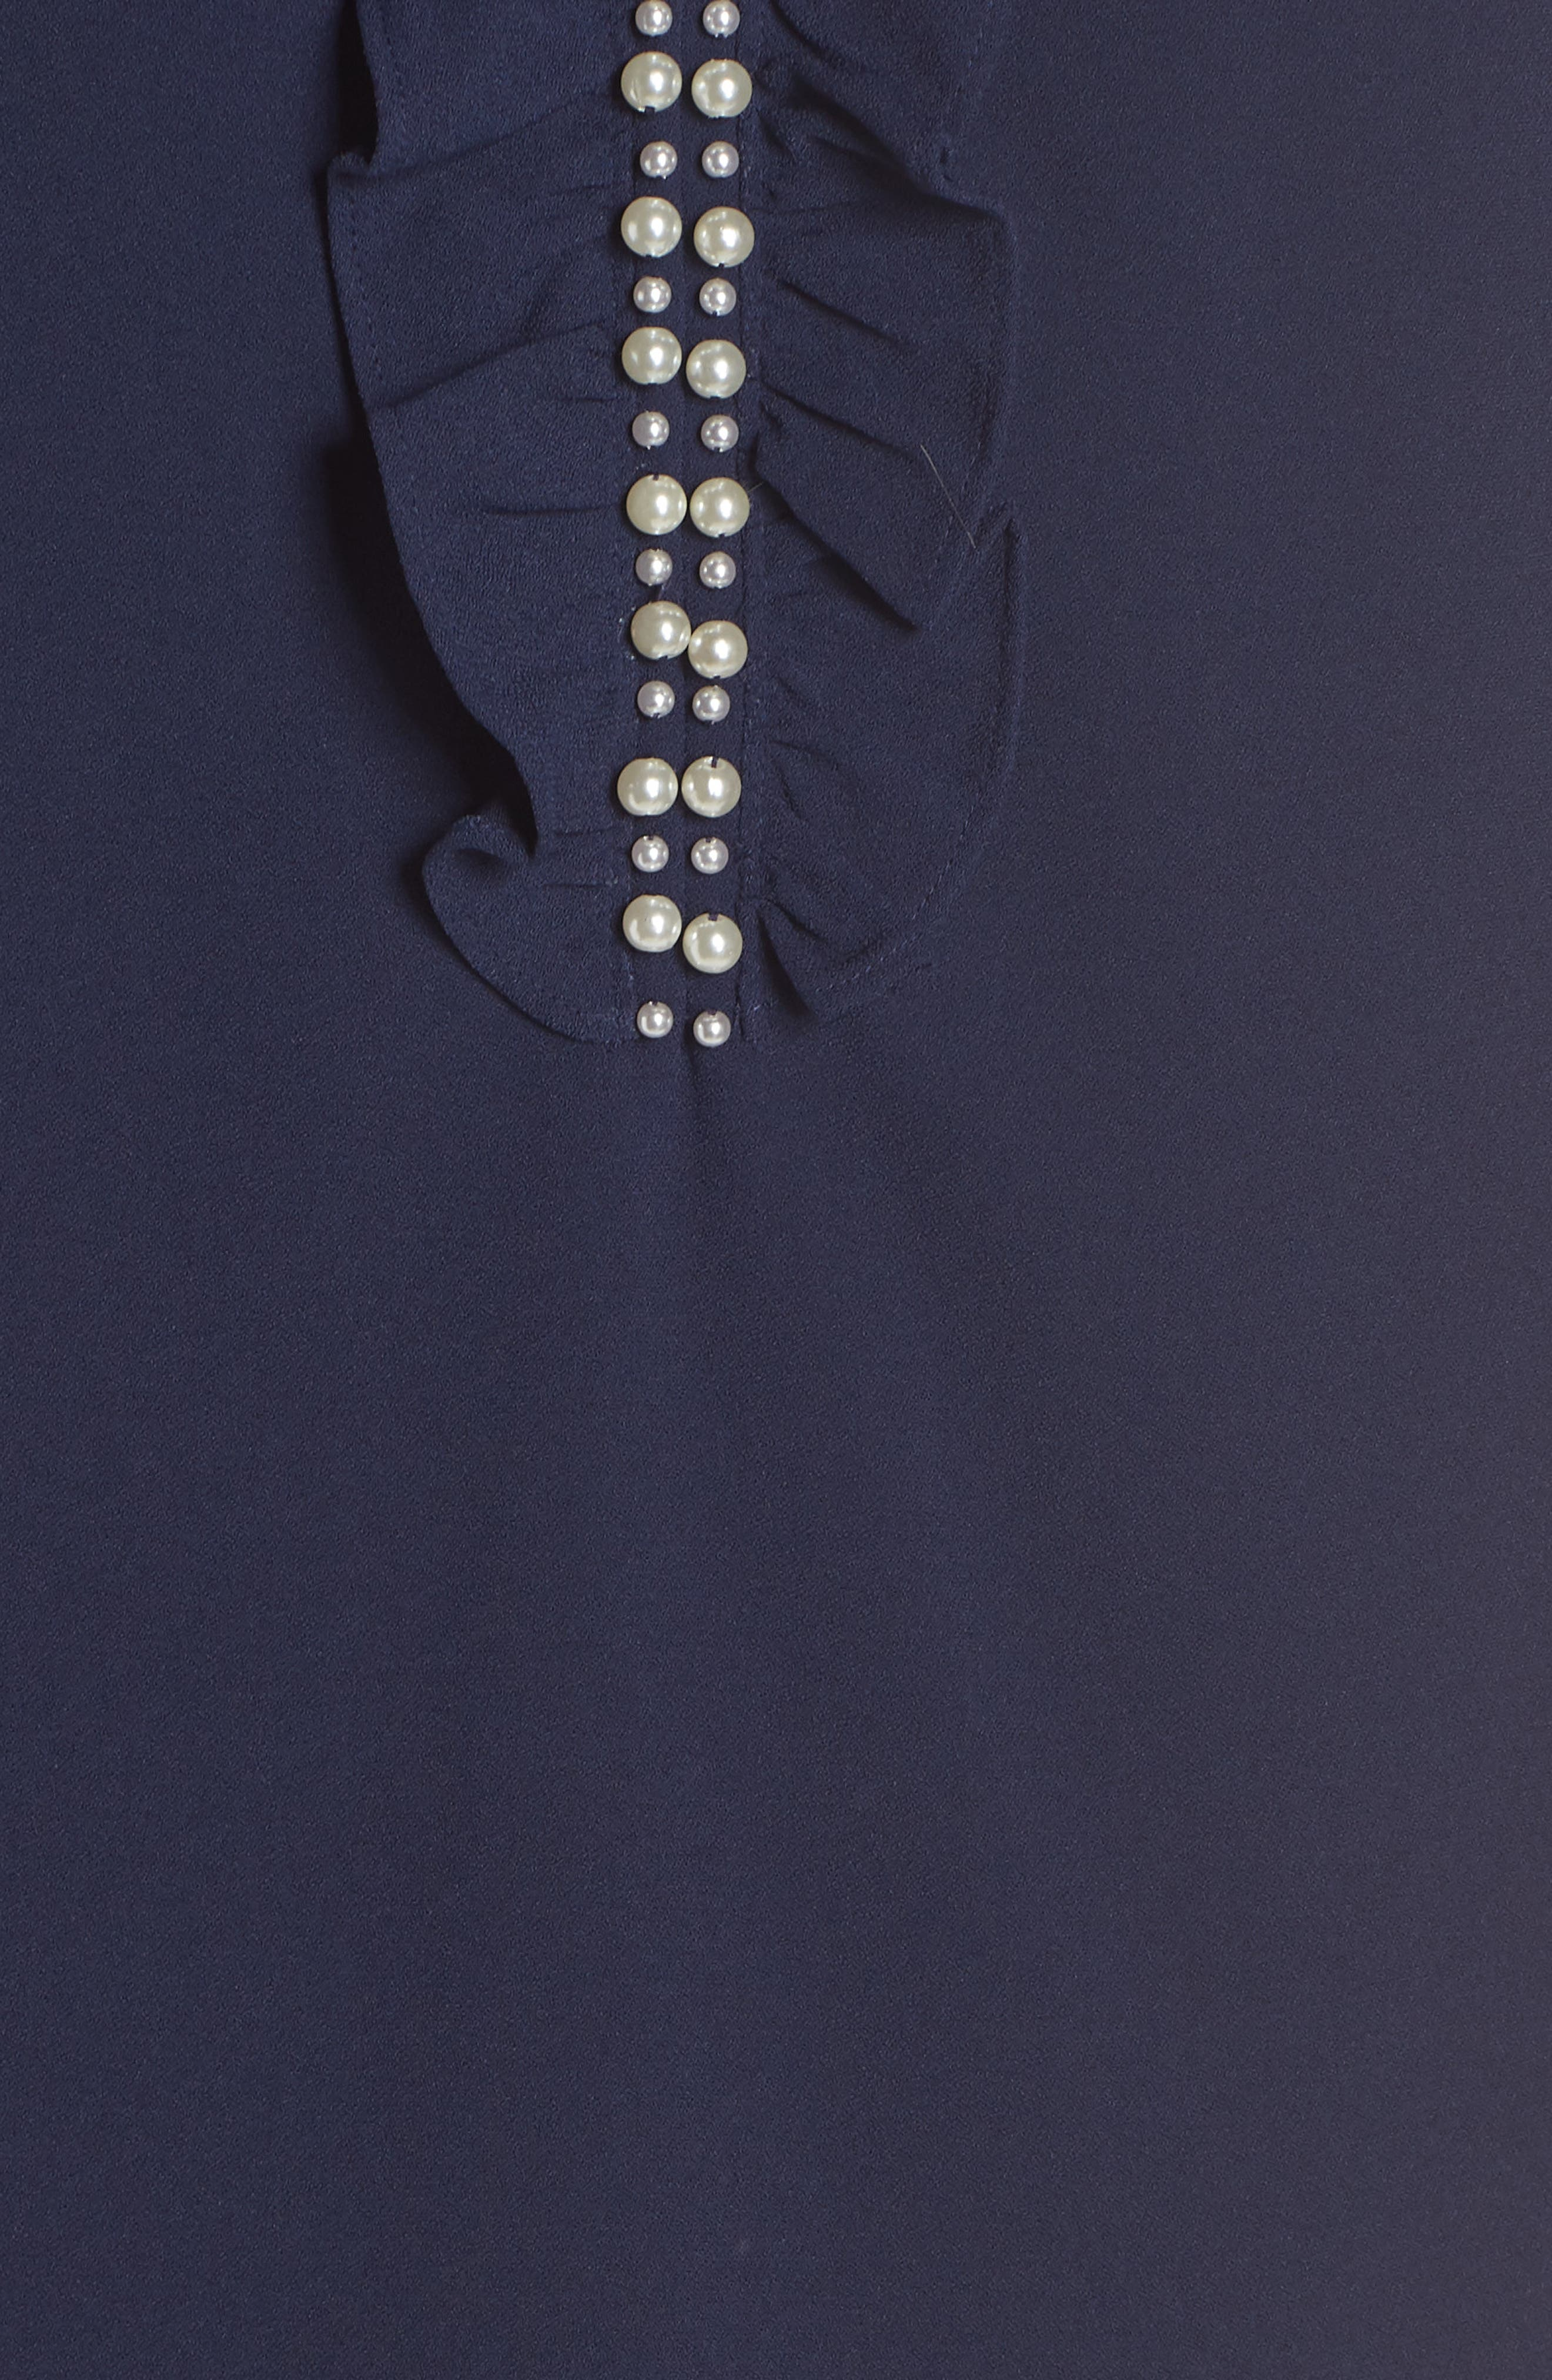 LILLY PULITZER<SUP>®</SUP>, Adalee Shift Dress, Alternate thumbnail 5, color, TRUE NAVY